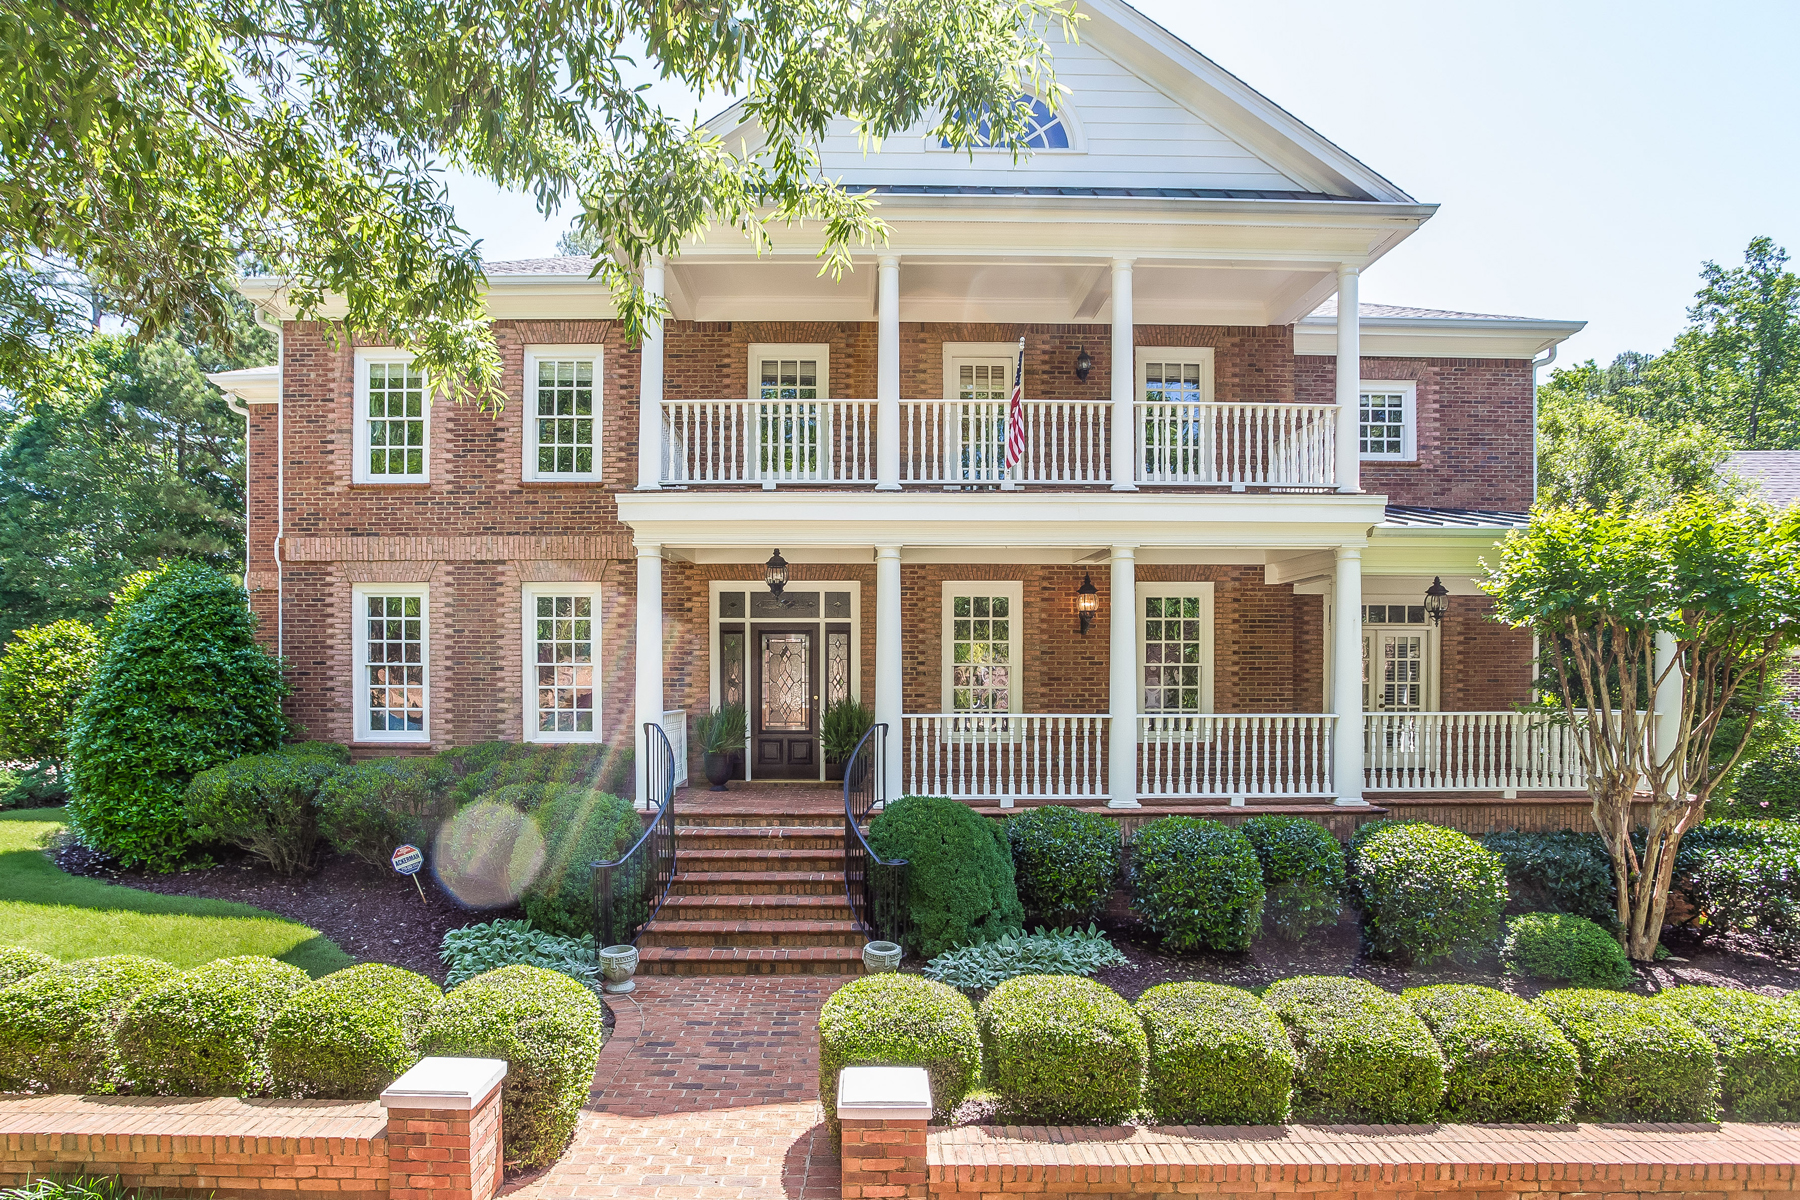 Moradia para Venda às Extraordinary Brick Colonial 6 Bedroom 6.5 Bath with Old World Elegance 8650 Ellard Drive Alpharetta, Geórgia, 30022 Estados Unidos